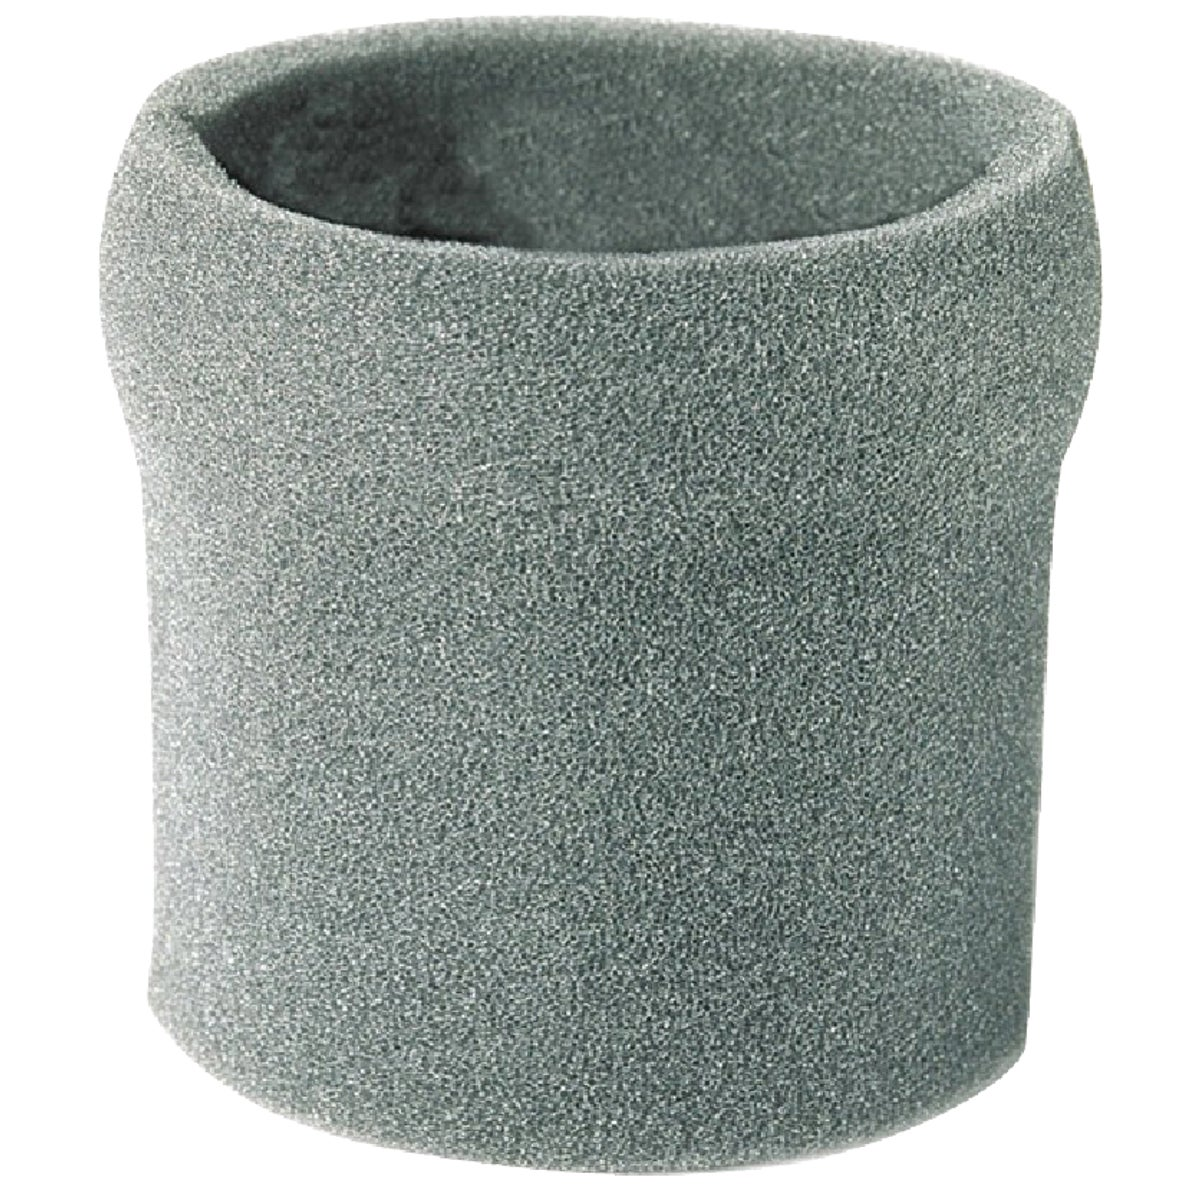 HANG UP VAC FOAM FILTER - 905-26-00 by Shop Vac Corp